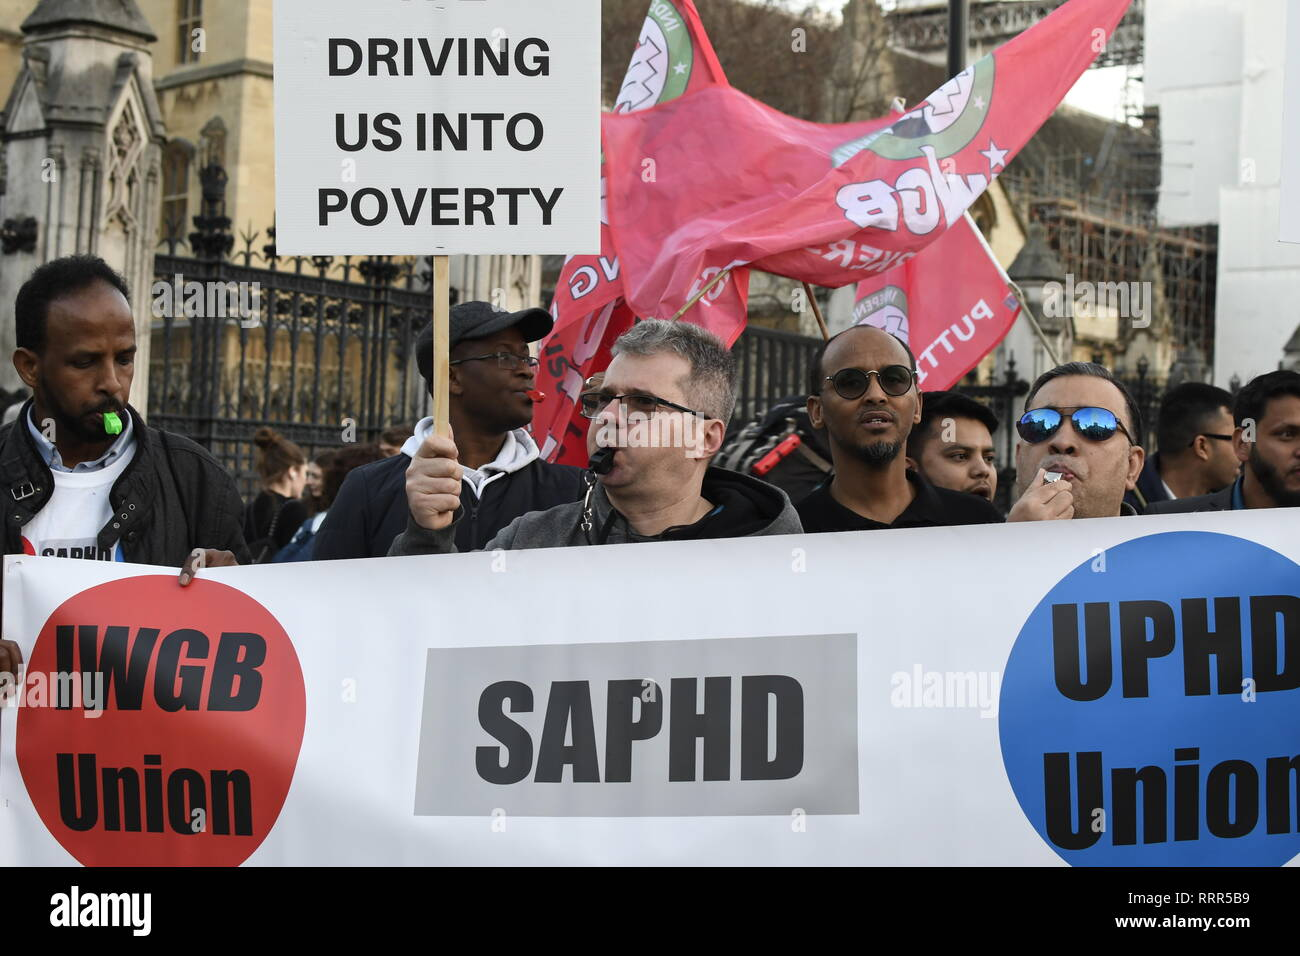 Demonstrators seen blowing whistles during the protest. Minicab drivers blocked Parliament Square in protest over changes to the congestion charge. Drivers are against congestion charges introduced by Mayor Sadiq Khan. TFL said the measure is necessary to reduce London's air pollution. - Stock Image